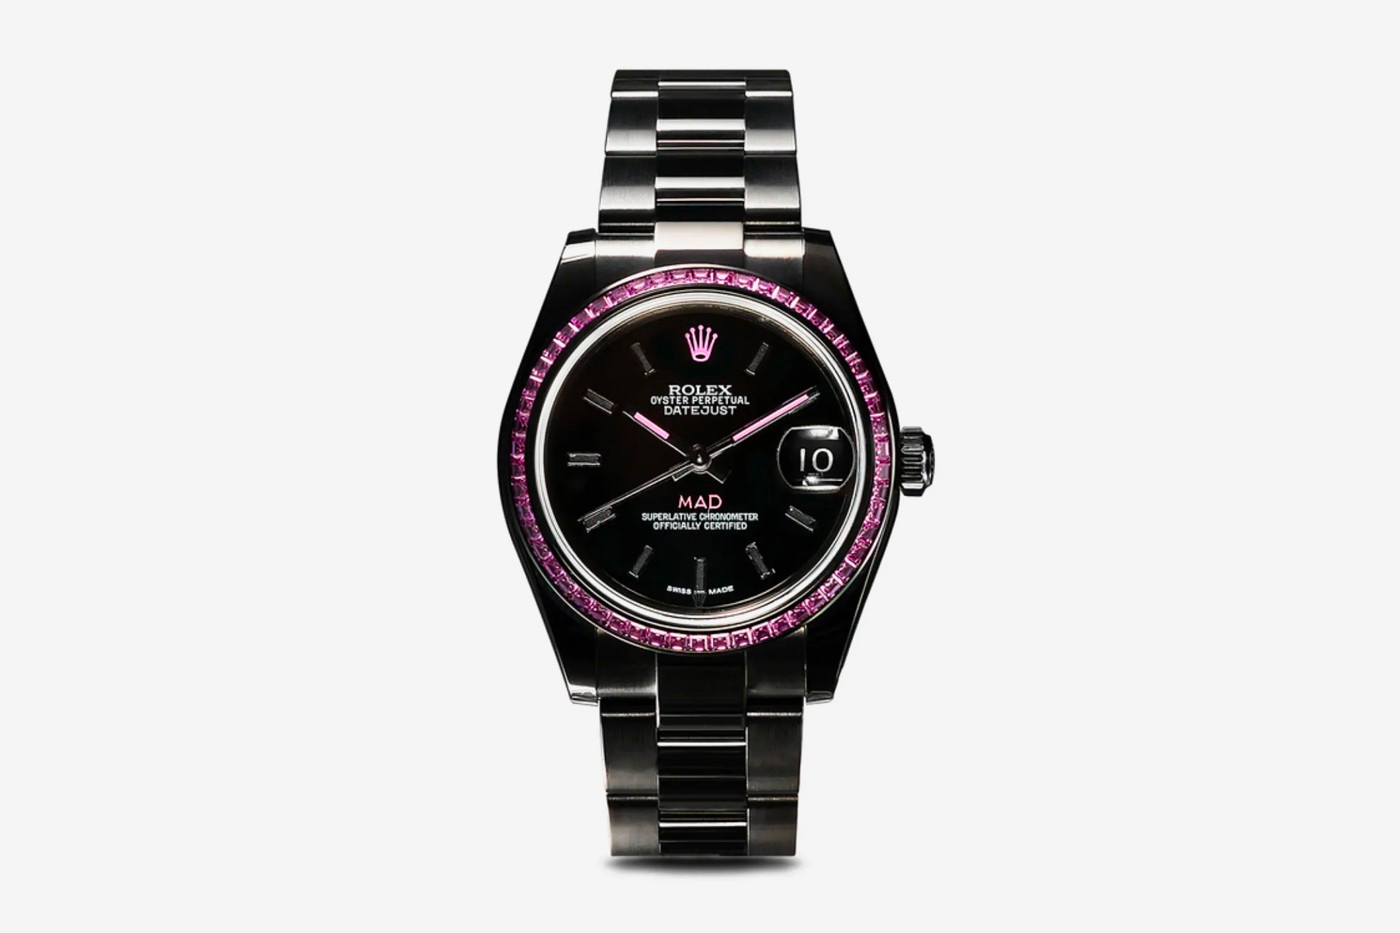 MAD Paris Black Pink Sapphire Rolex Datejust 31 Watch Release info Buy